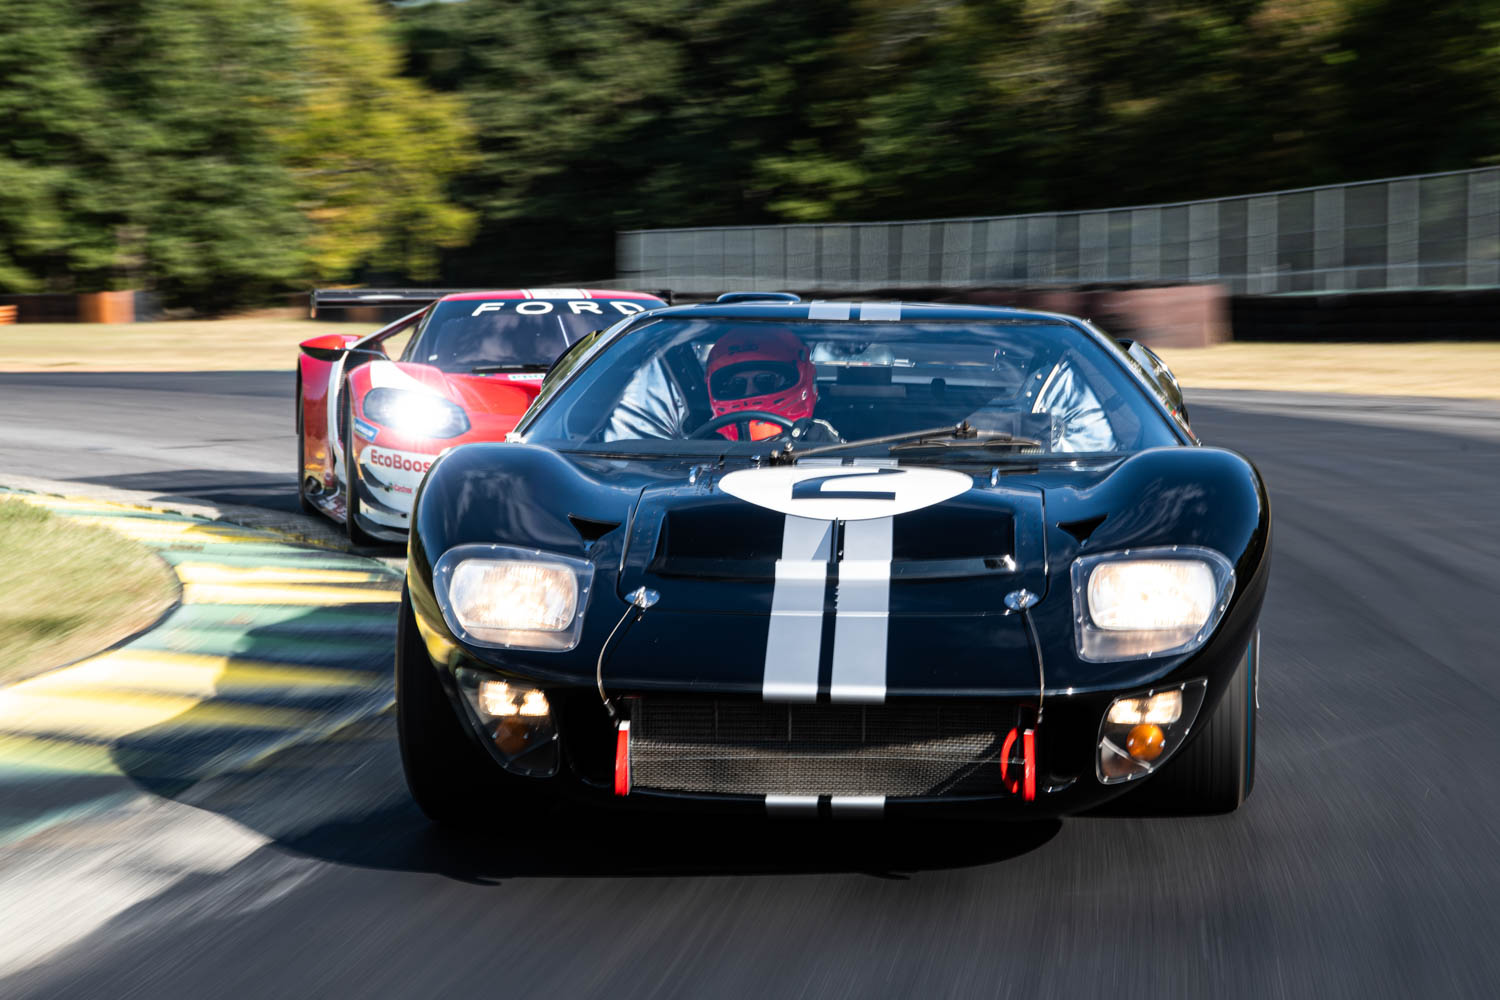 The 1966 GT40 leads the 2016 GTLM at Virginia International Raceway.